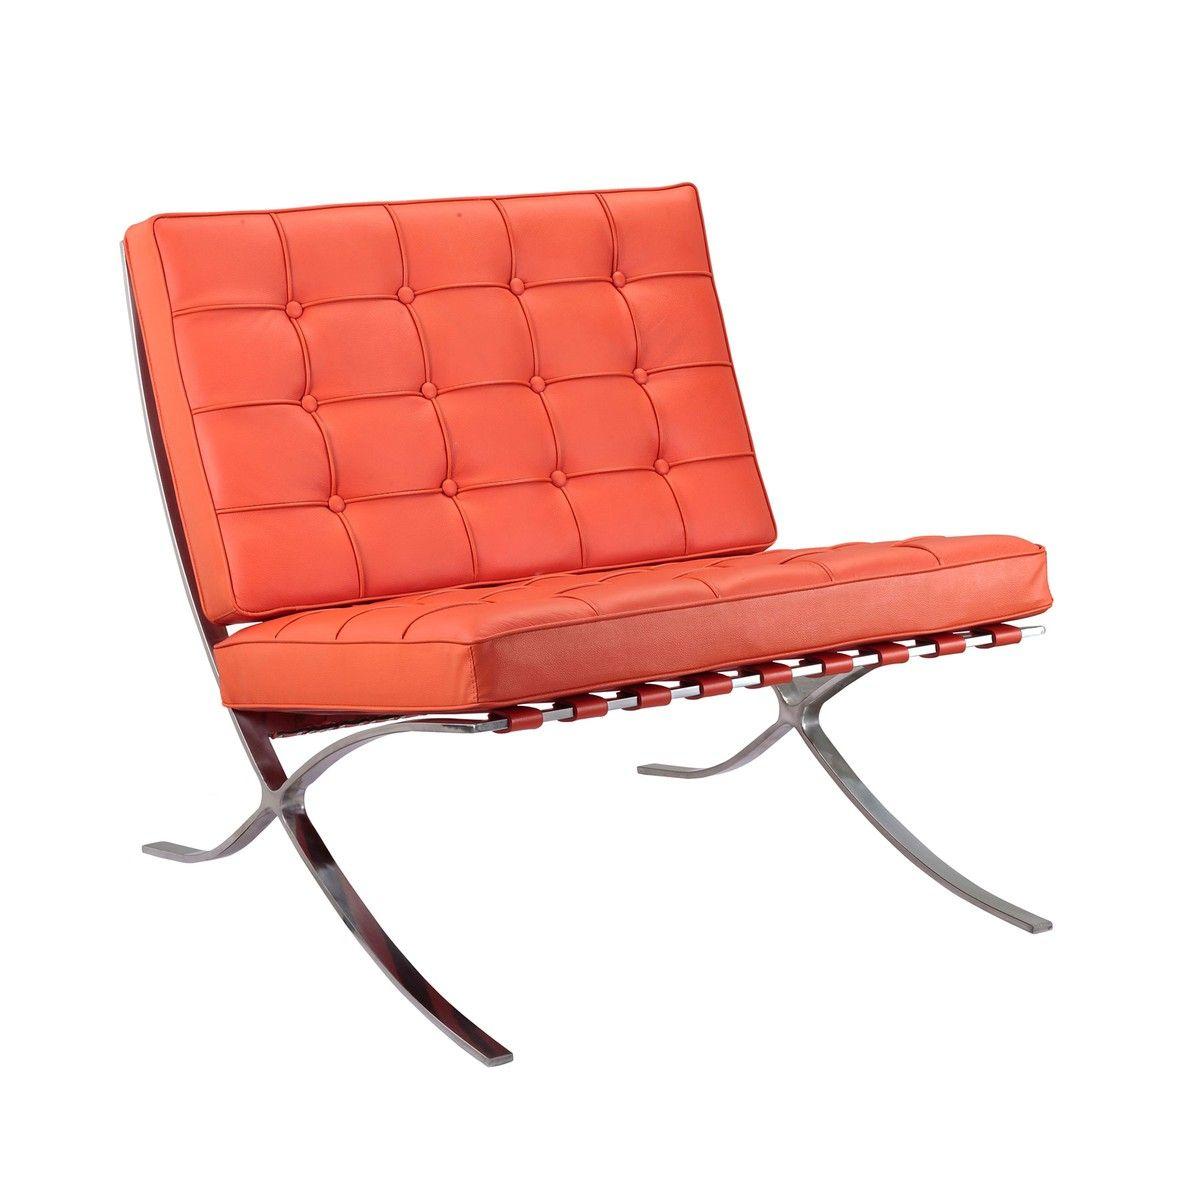 Nothing says Bauhaus more than this luxurious leather